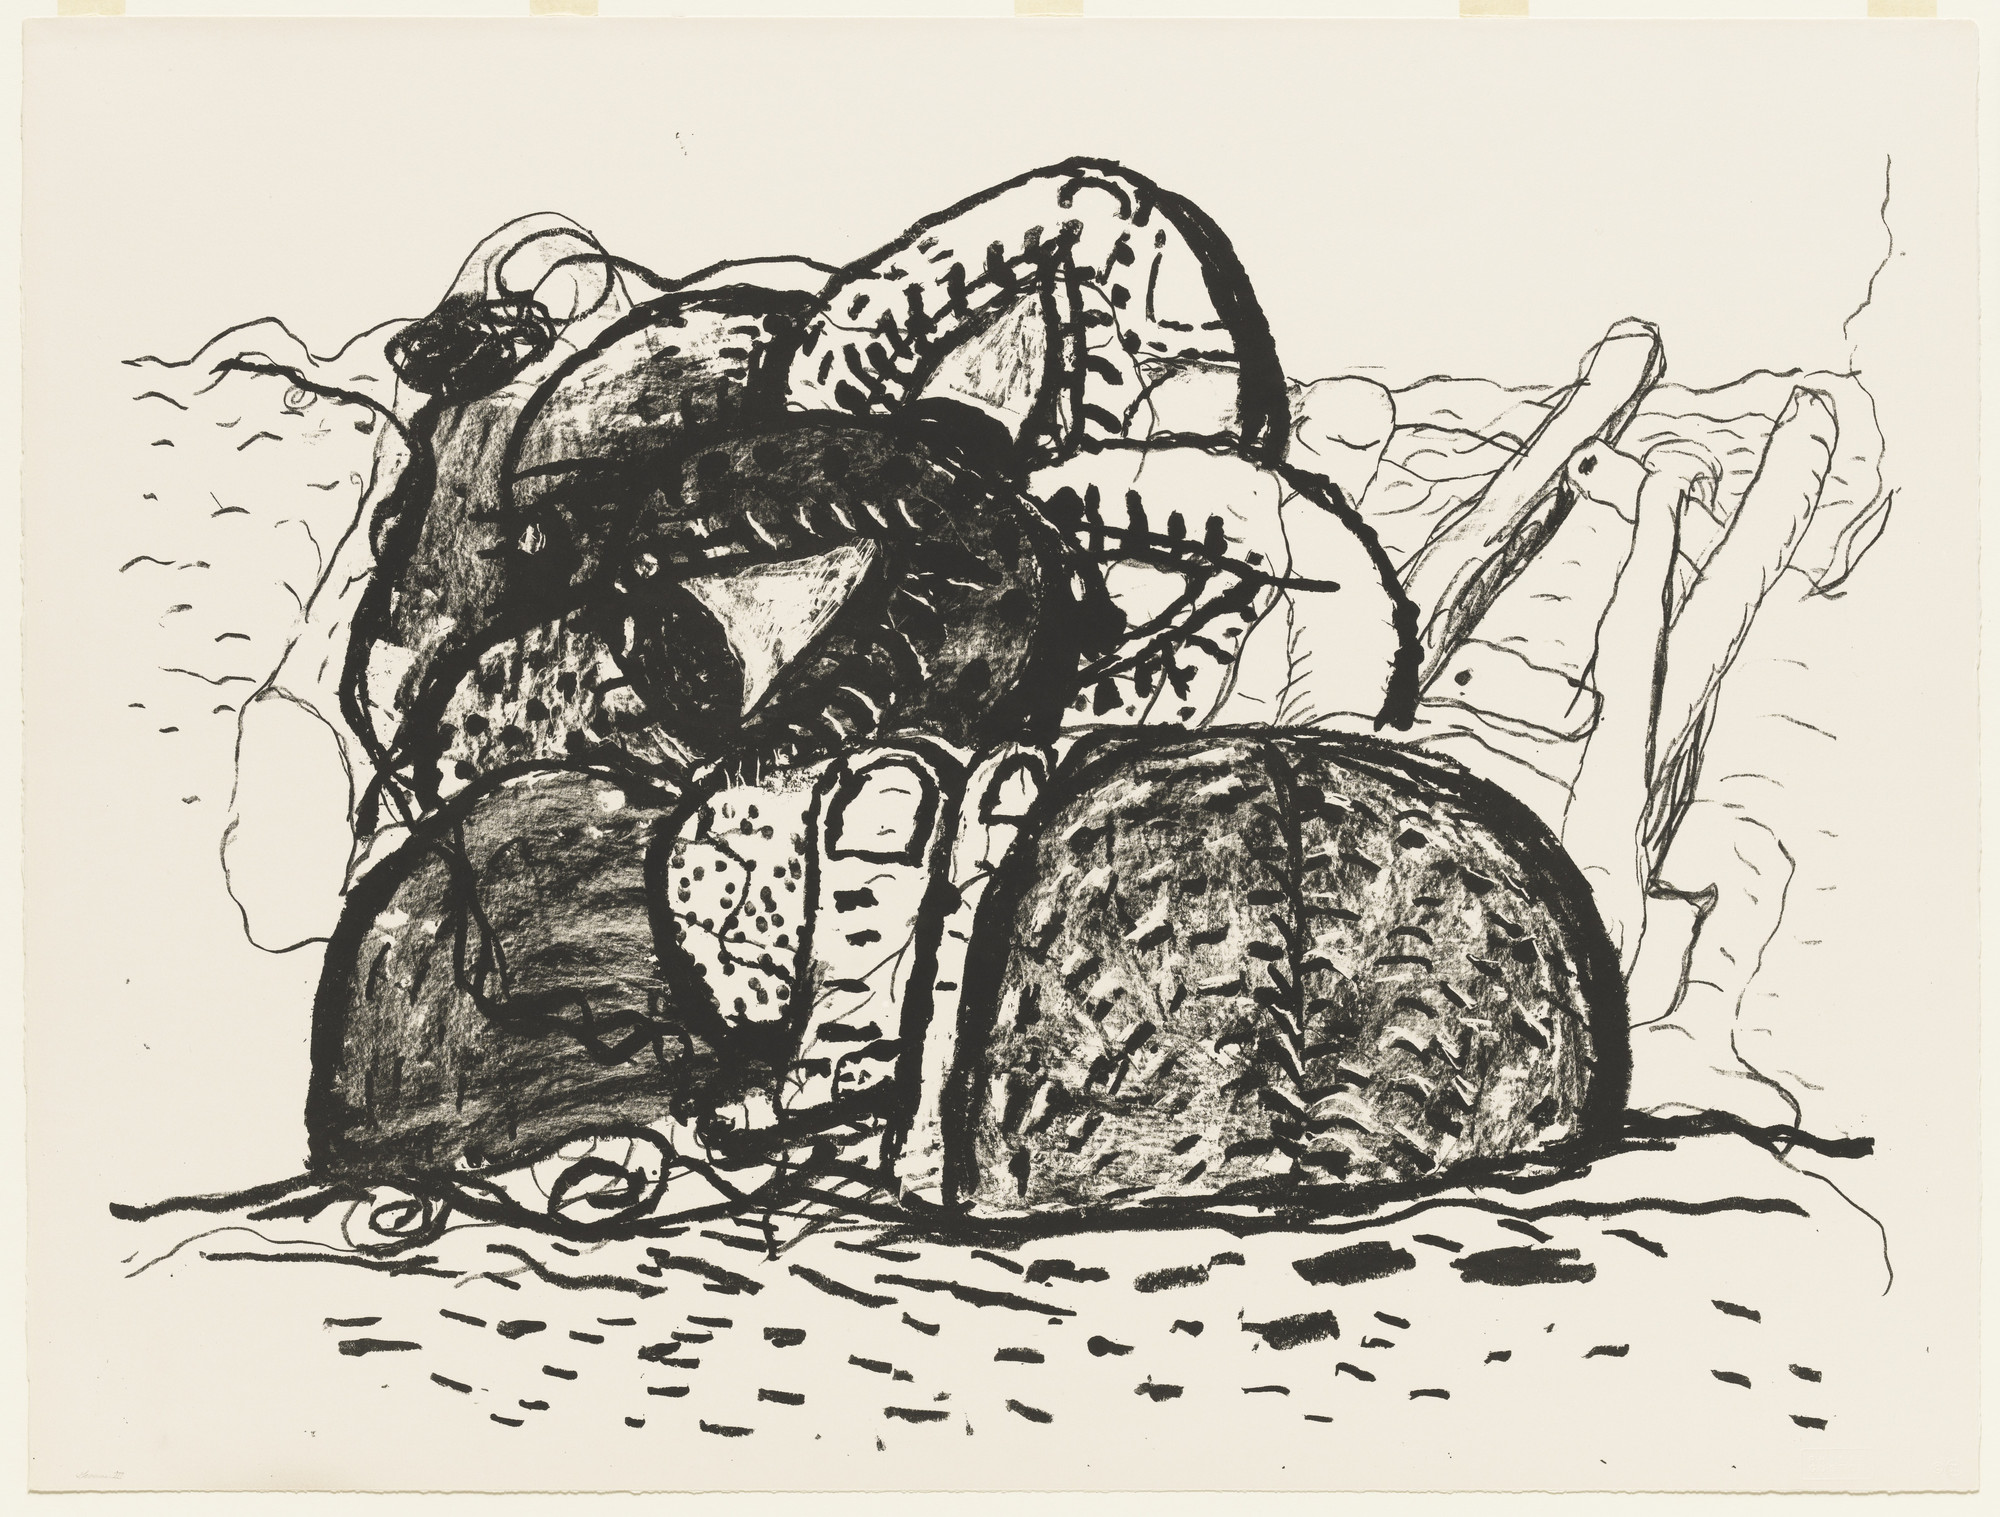 Philip Guston. Gulf. 1979, printed 1981, published 1983